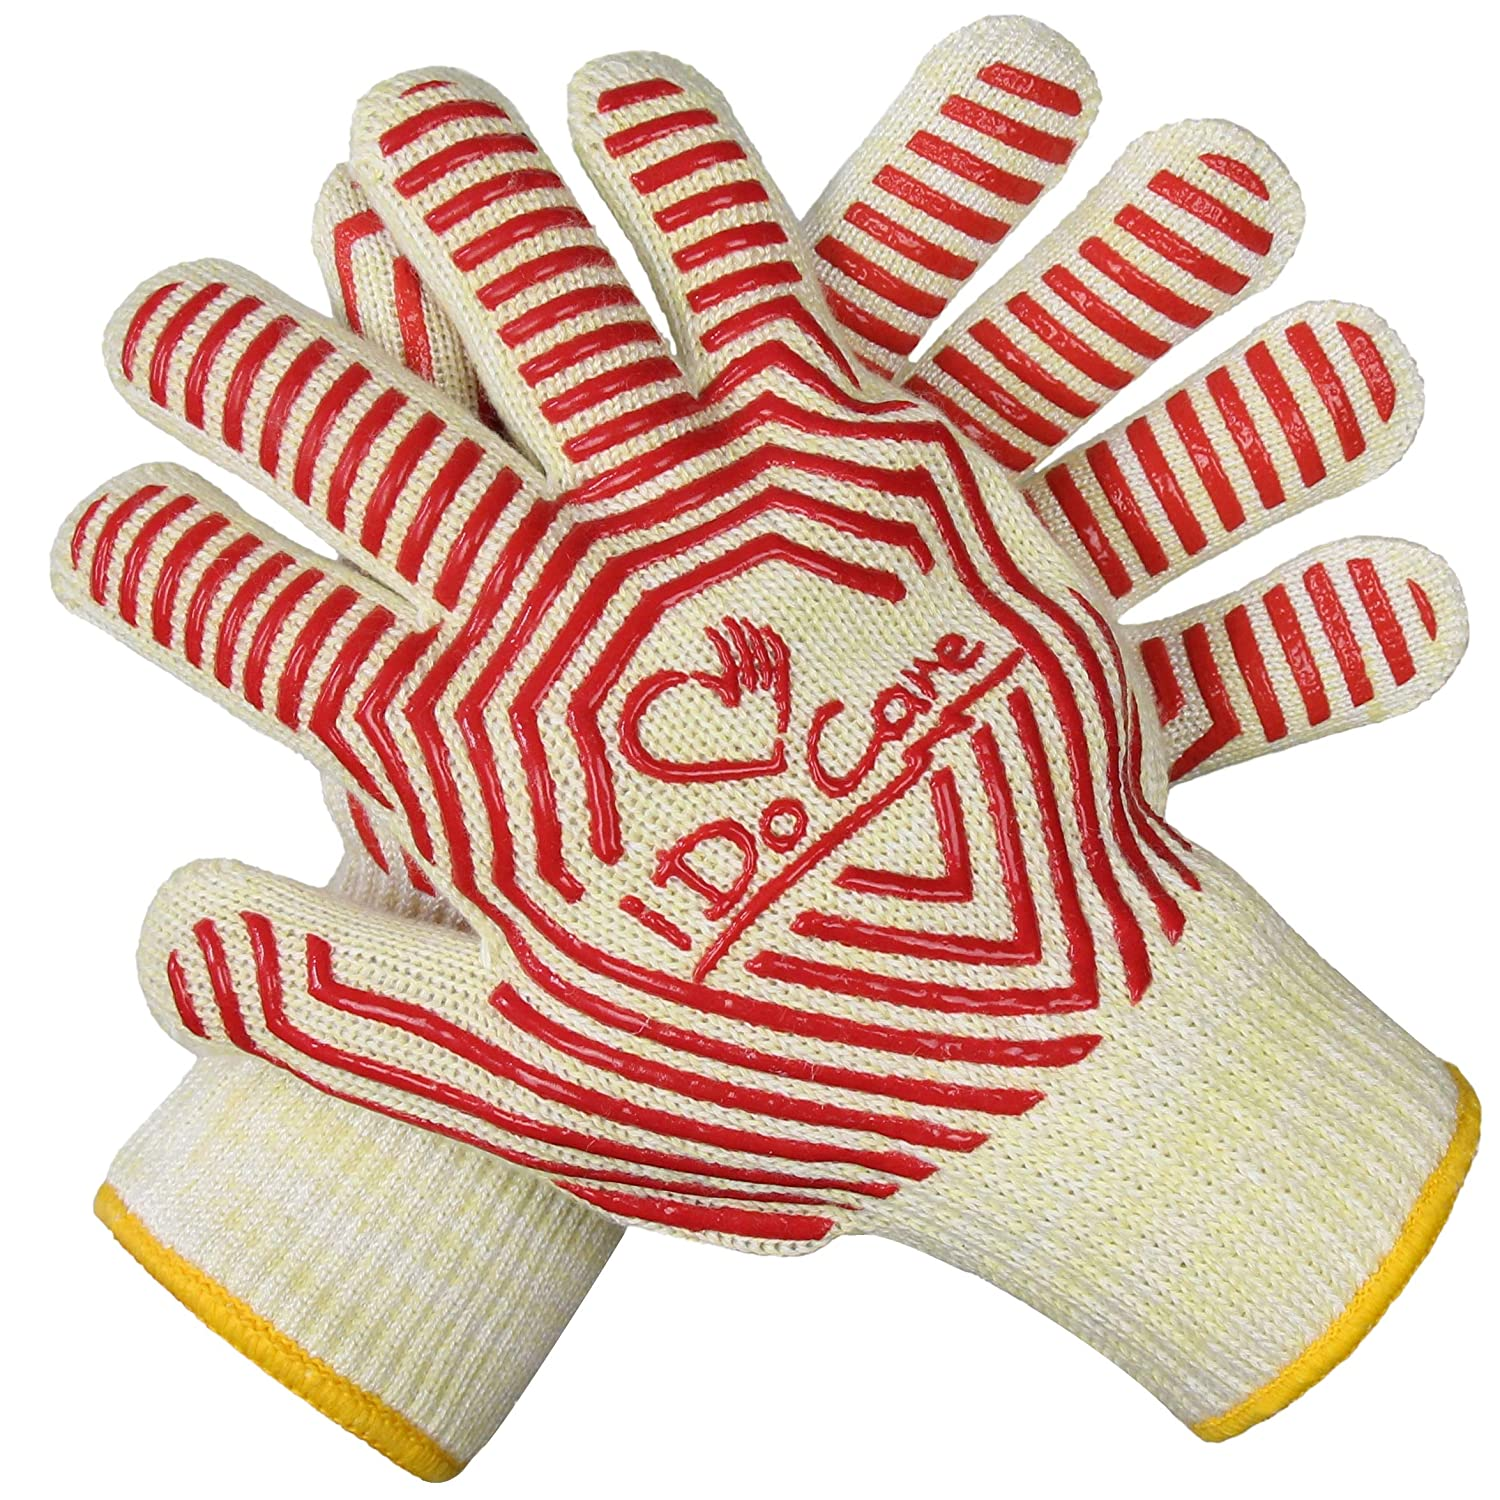 iDoCare Extreme Heat Resistant Oven Gloves, EN407 Certified BBQ Grilling Gloves with No-Slip Silicone Grips, Oven Mitts, Fireplace Gloves, Pot Holders - Best for Grilling, Baking, Cooking, Camping